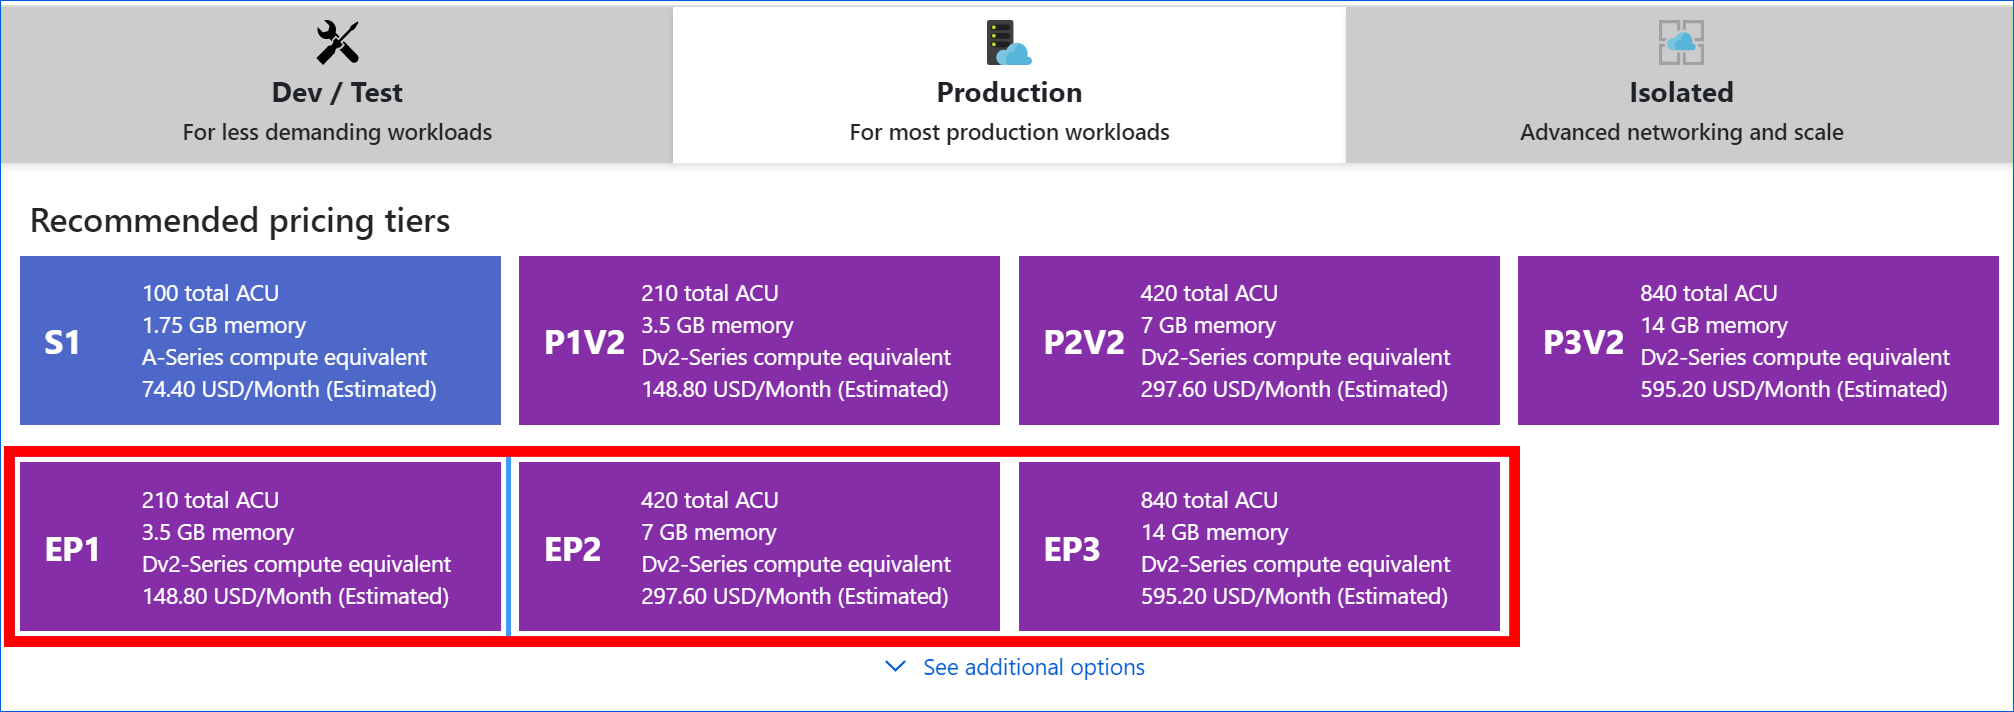 What's cool in Azure — April 2019 - Schuberg Philis